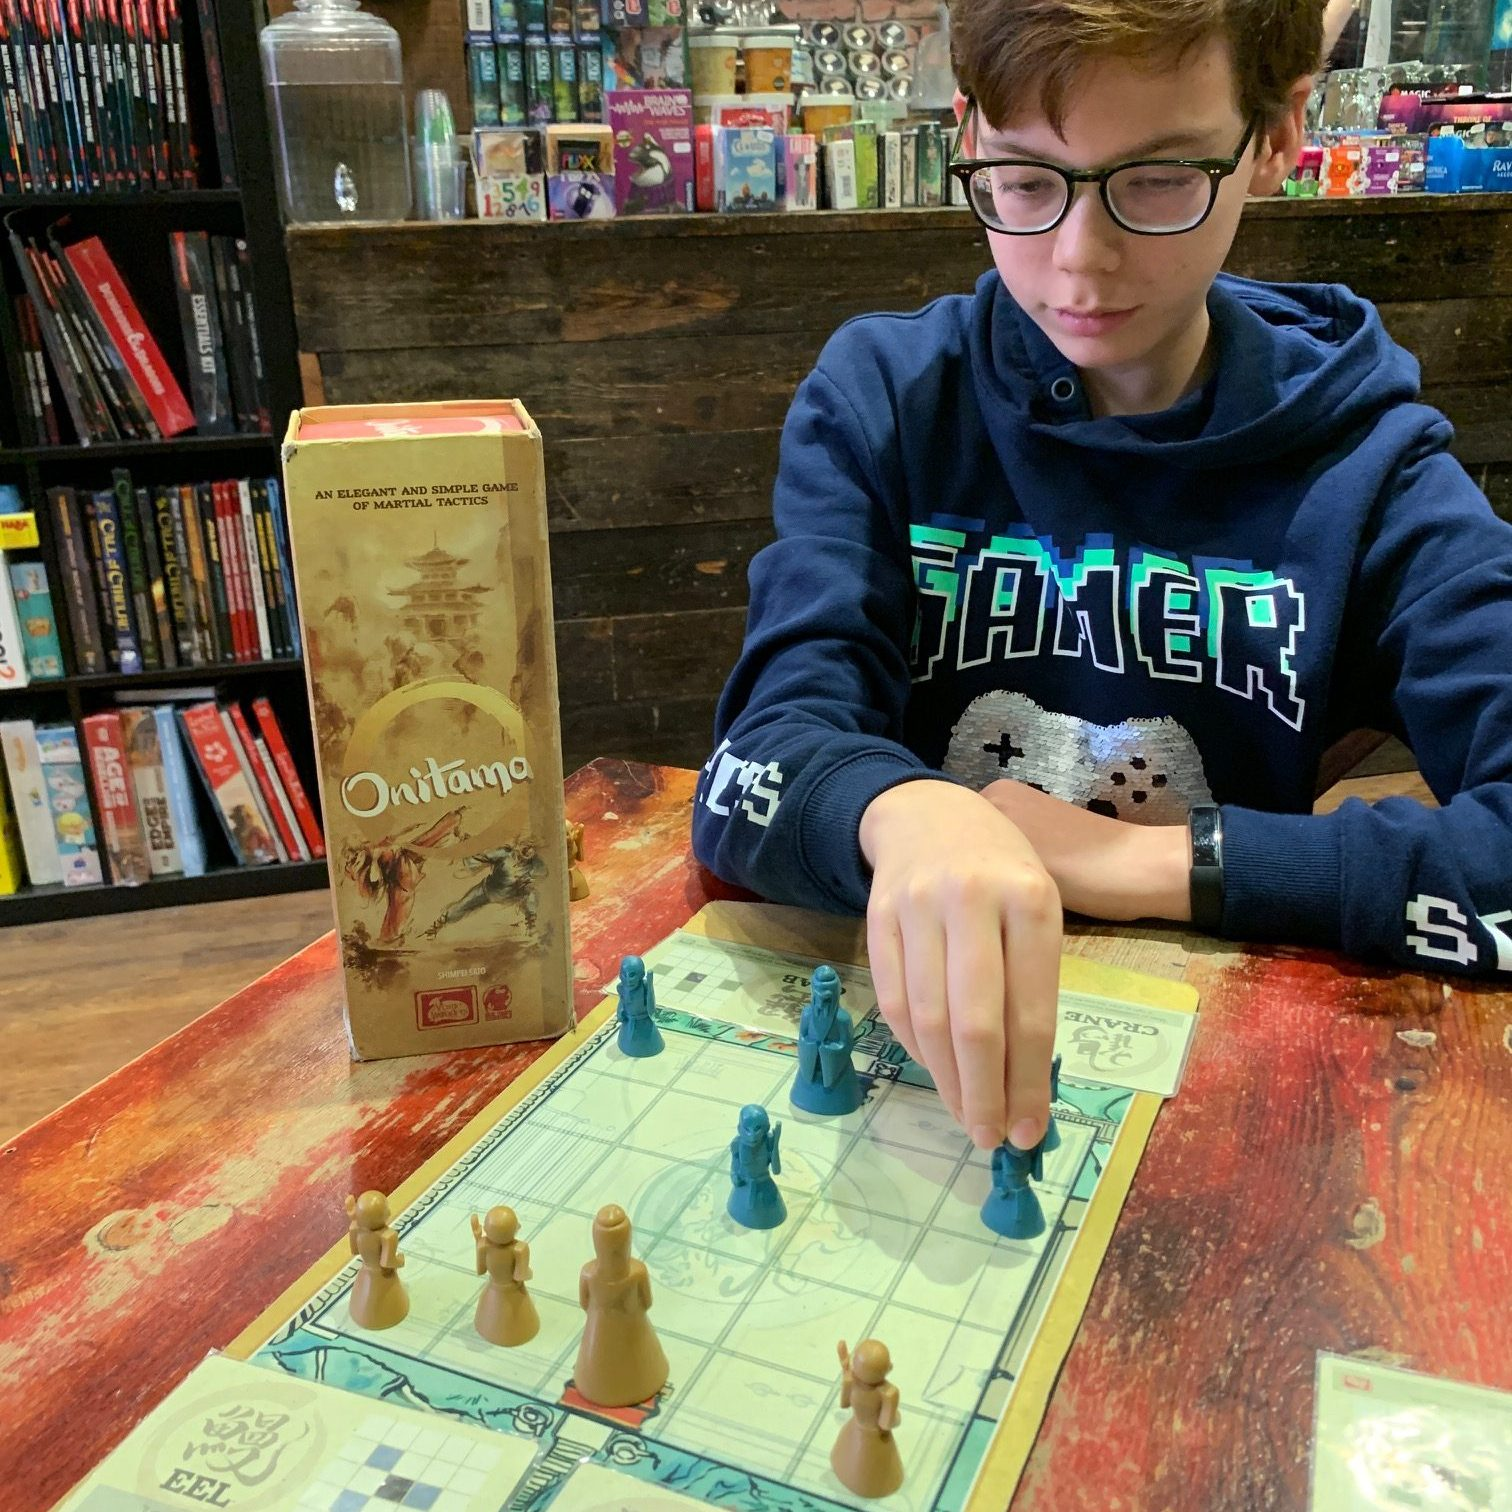 A boy playing a game